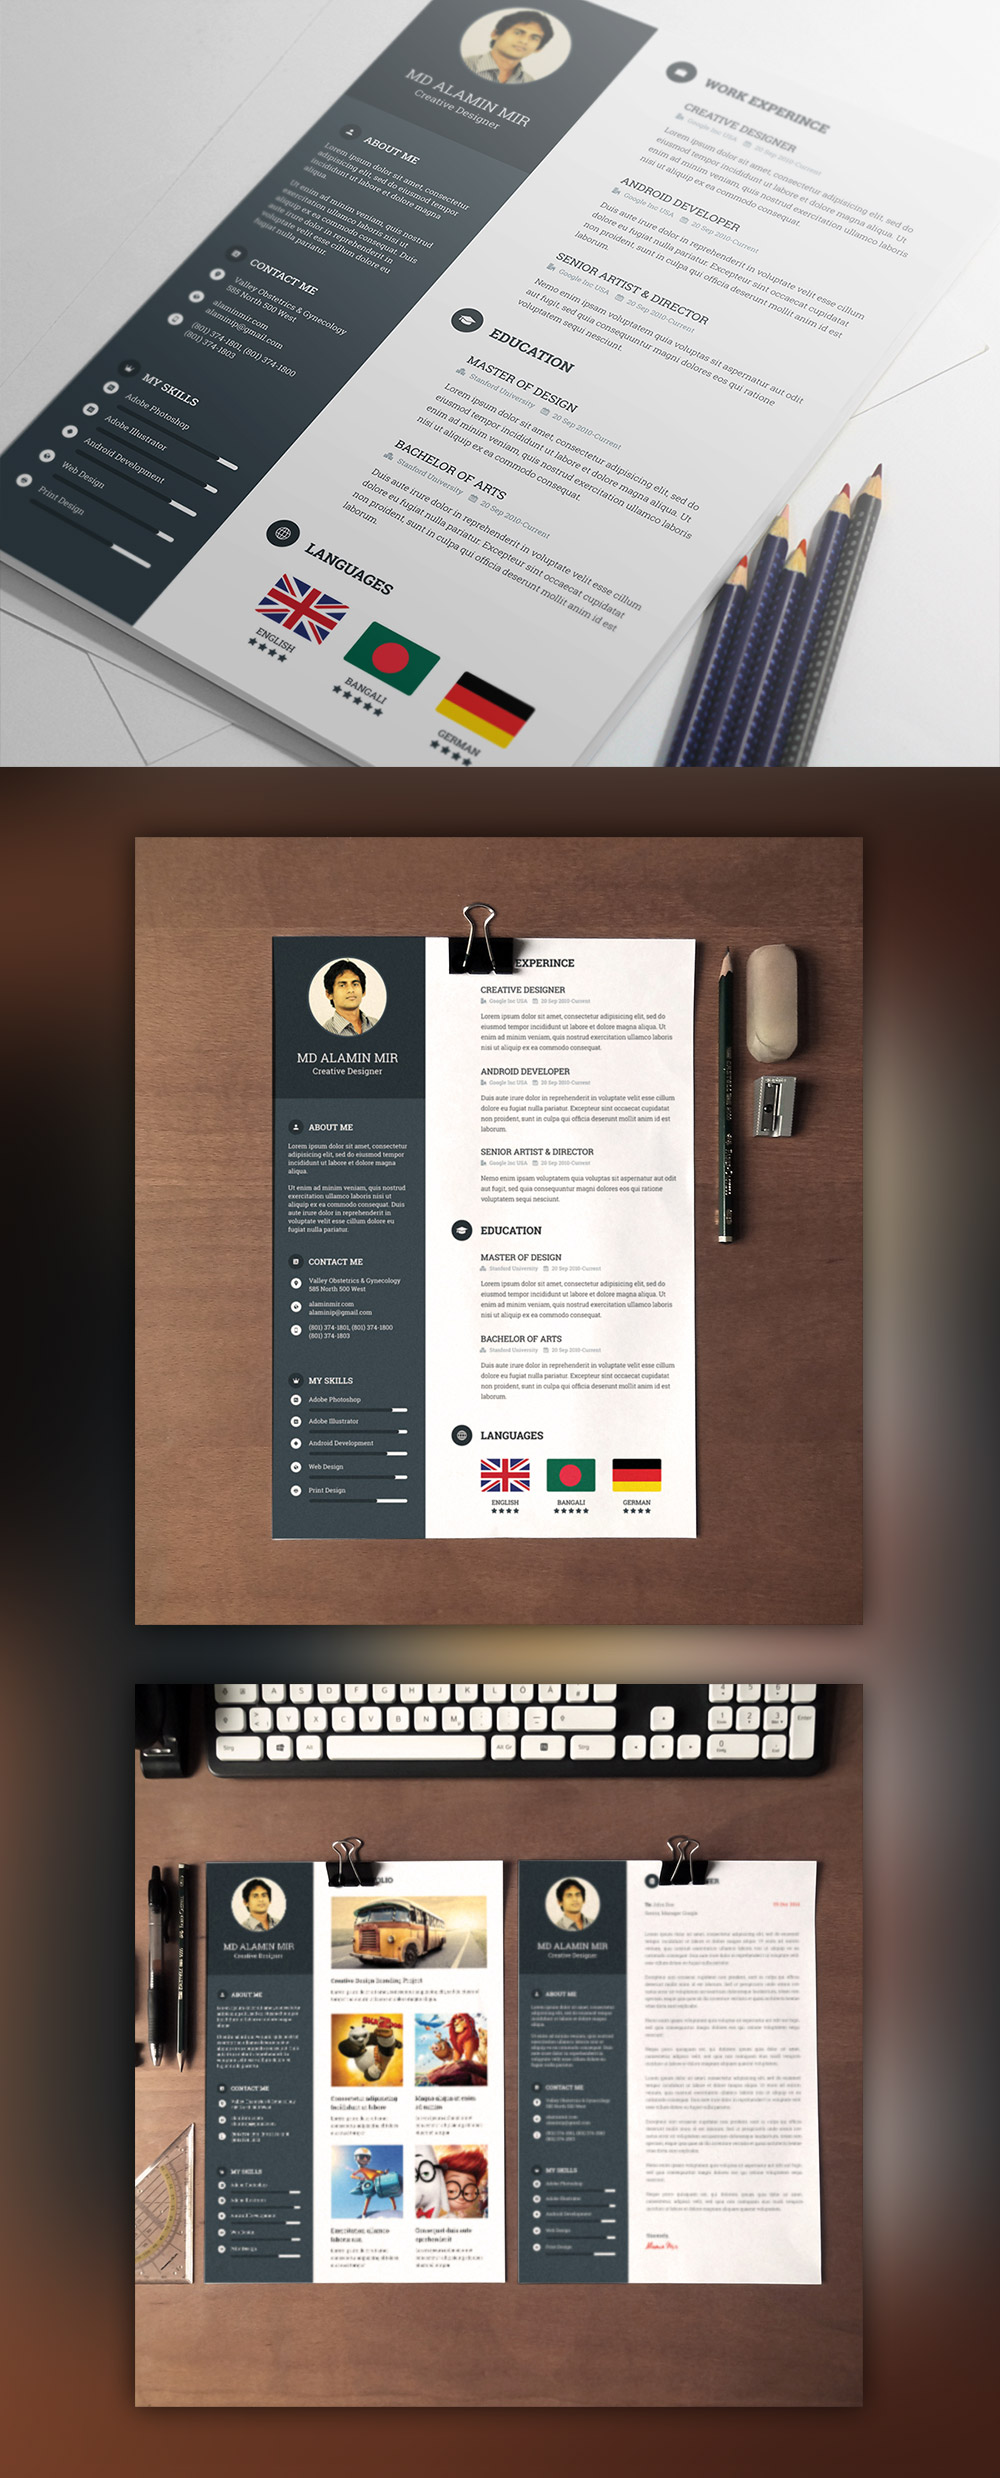 designer resume template with cover letter free psd - Free Cover Letter And Resume Templates